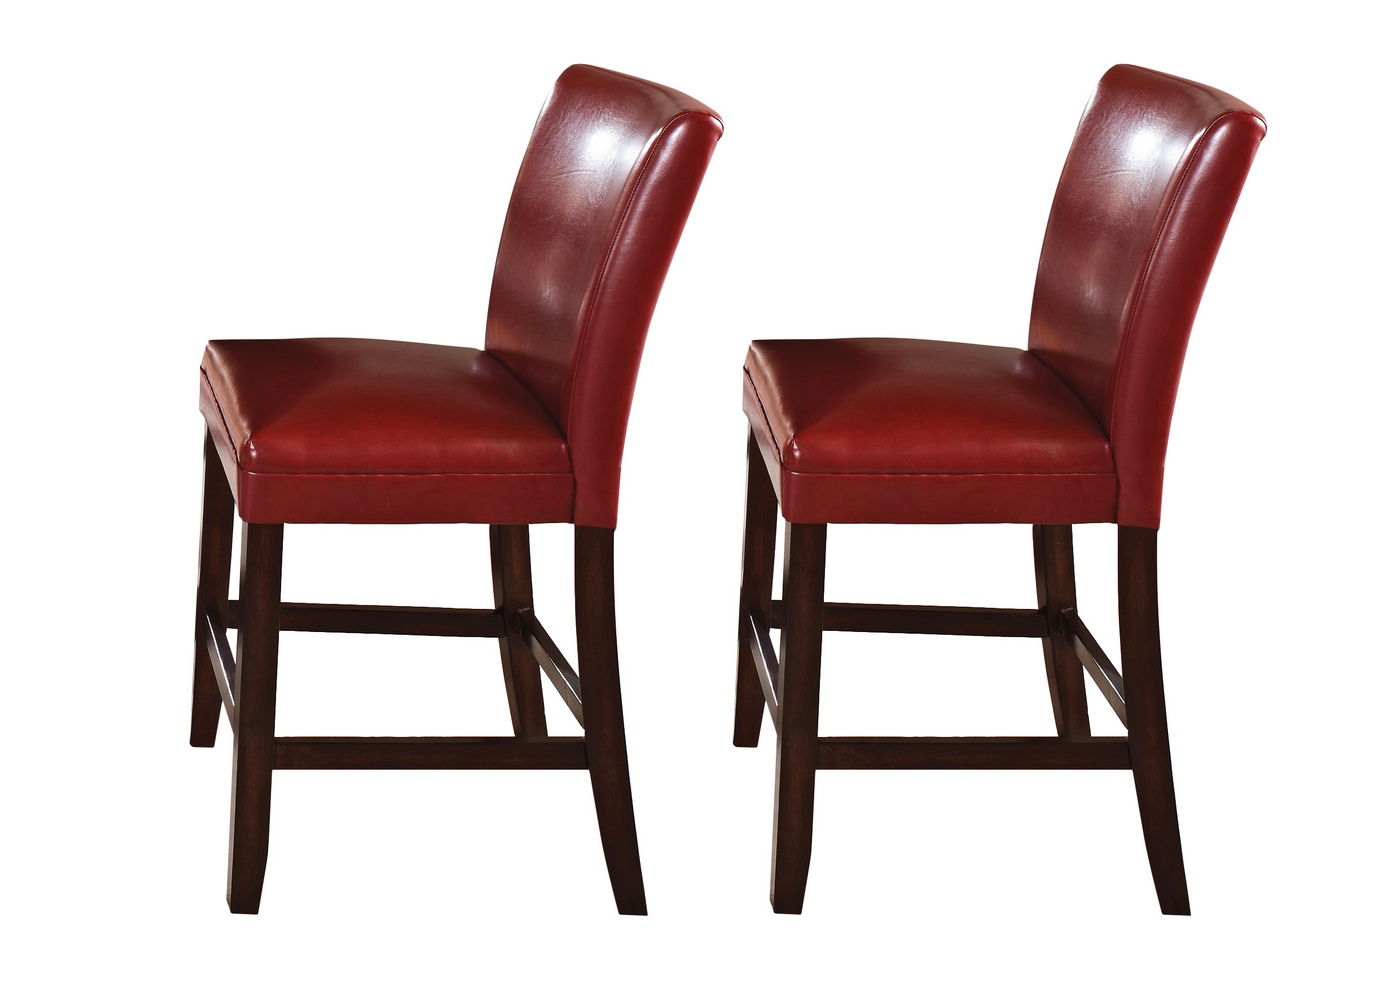 Upholstered Kitchen Chairs Set Of 2 Hartford Red Leather Upholstered Counter Height